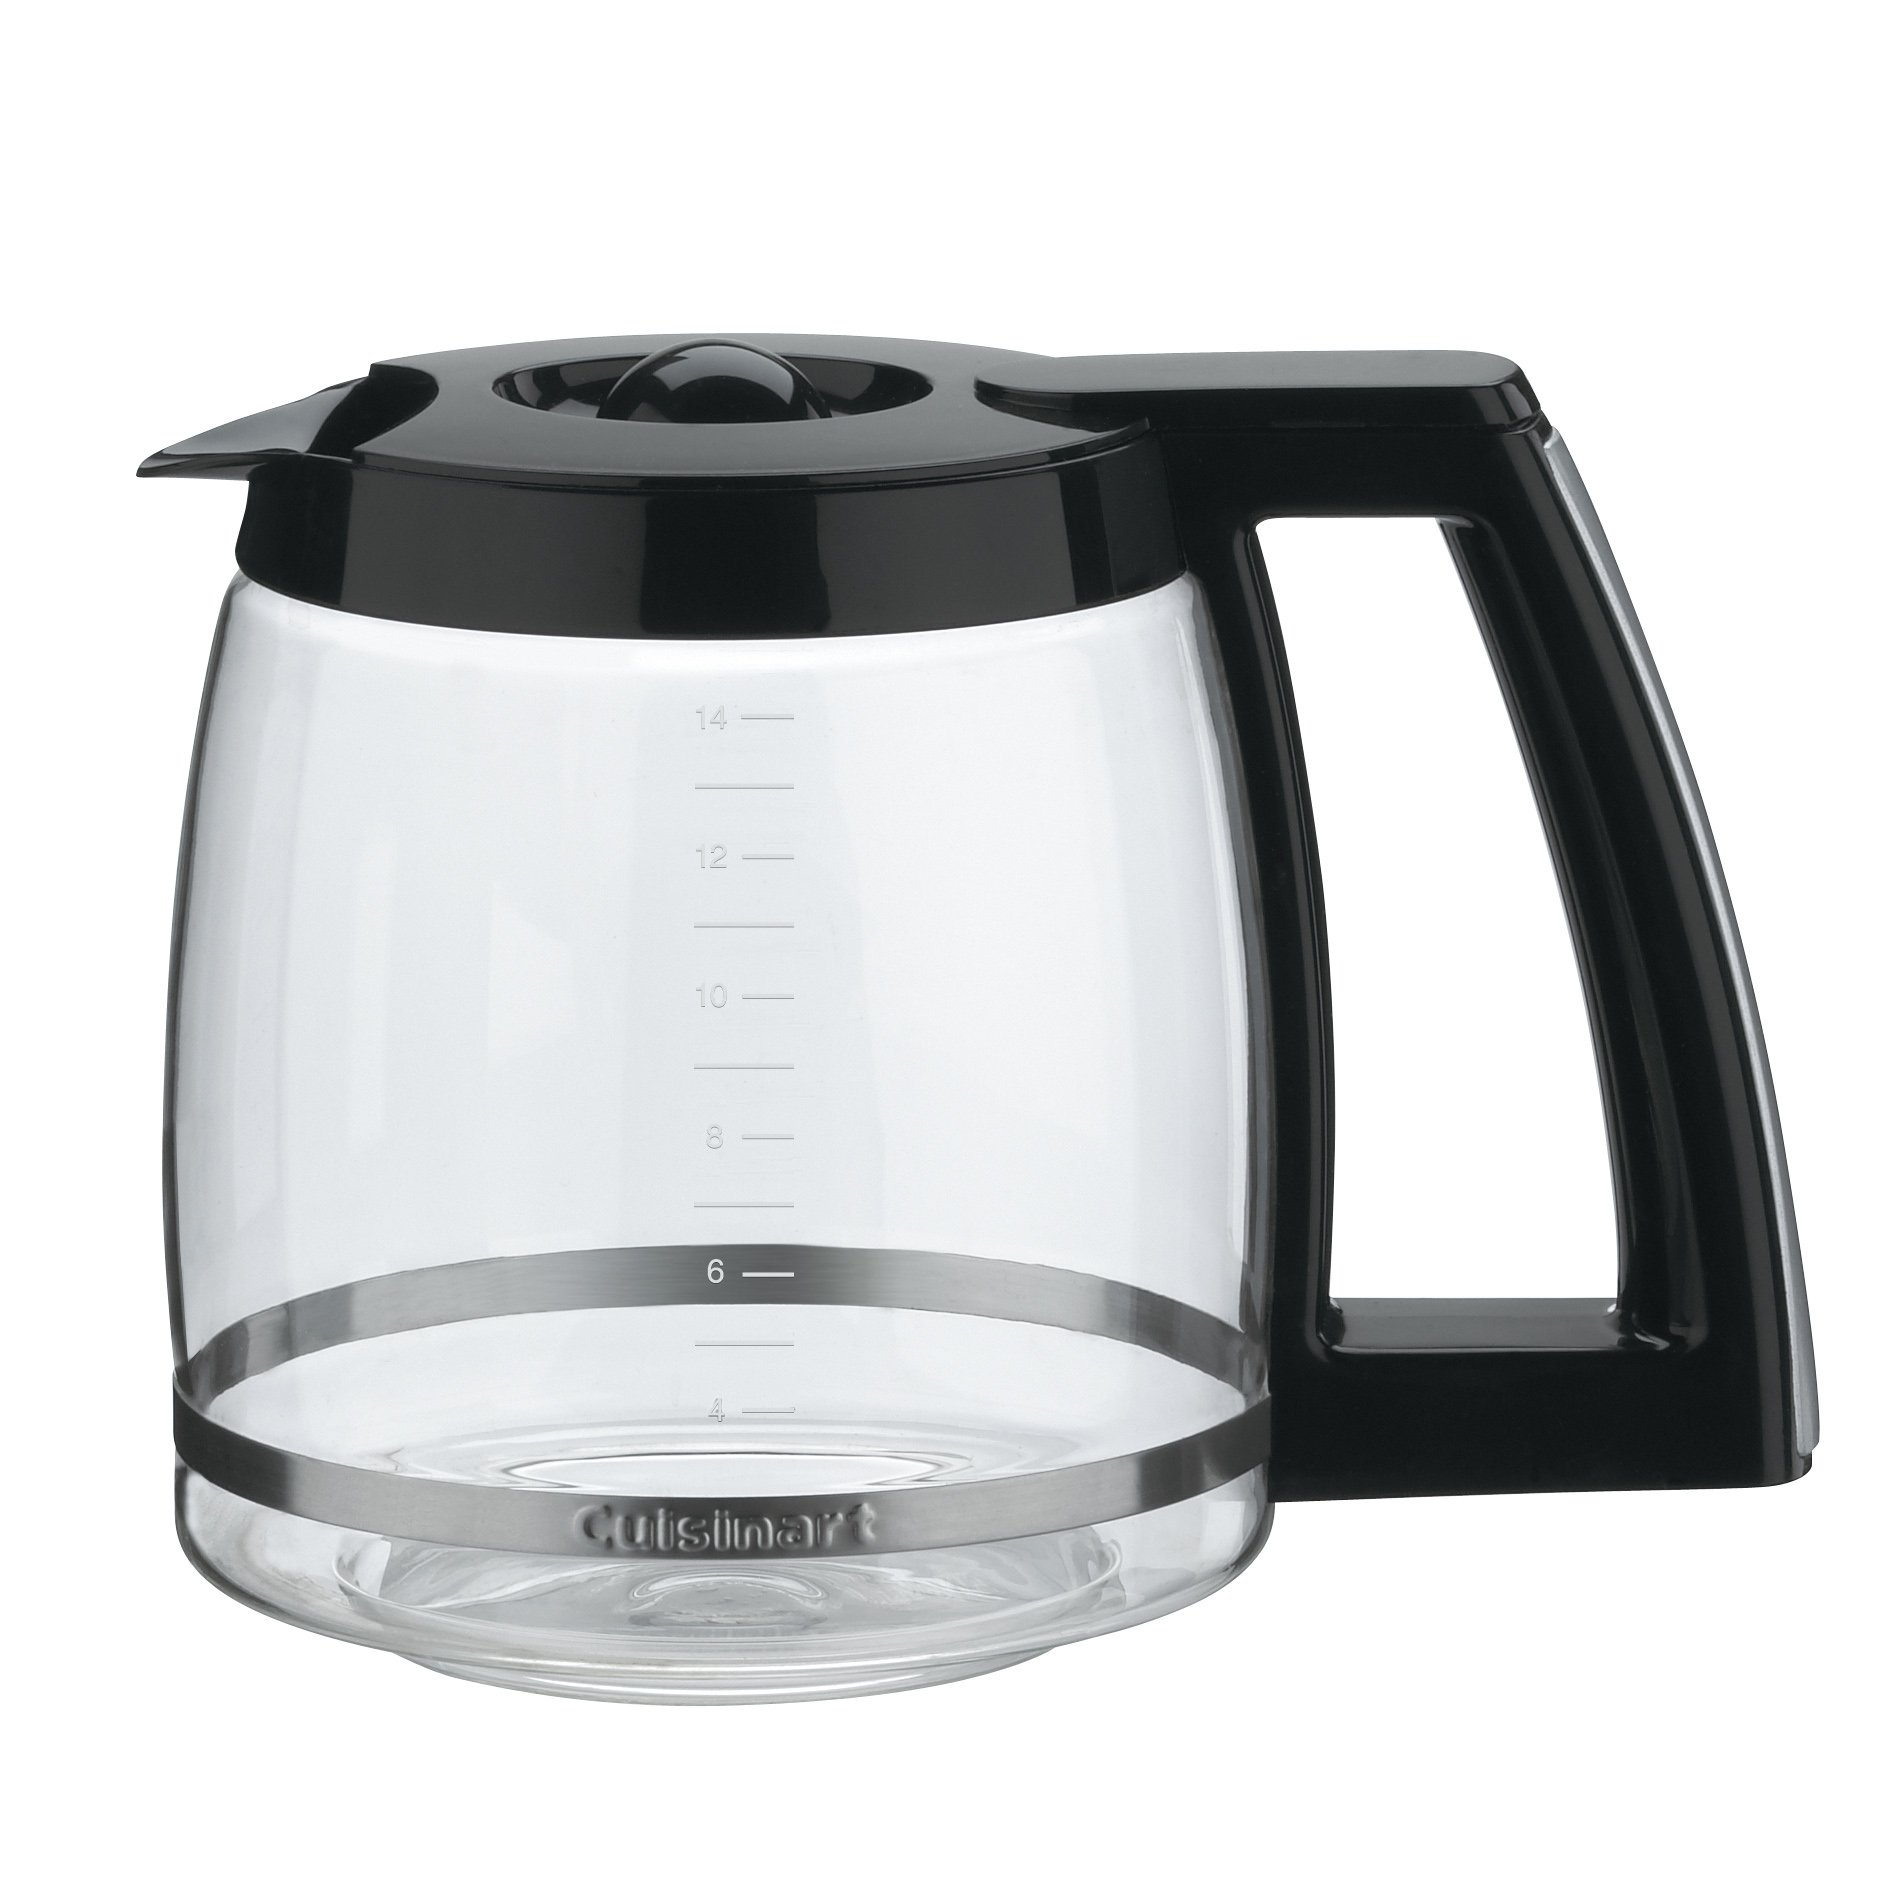 Cuisinart DCC-2200RC 14-Cup Replacement Glass Carafe, Black by Cuisinart (Image #1)